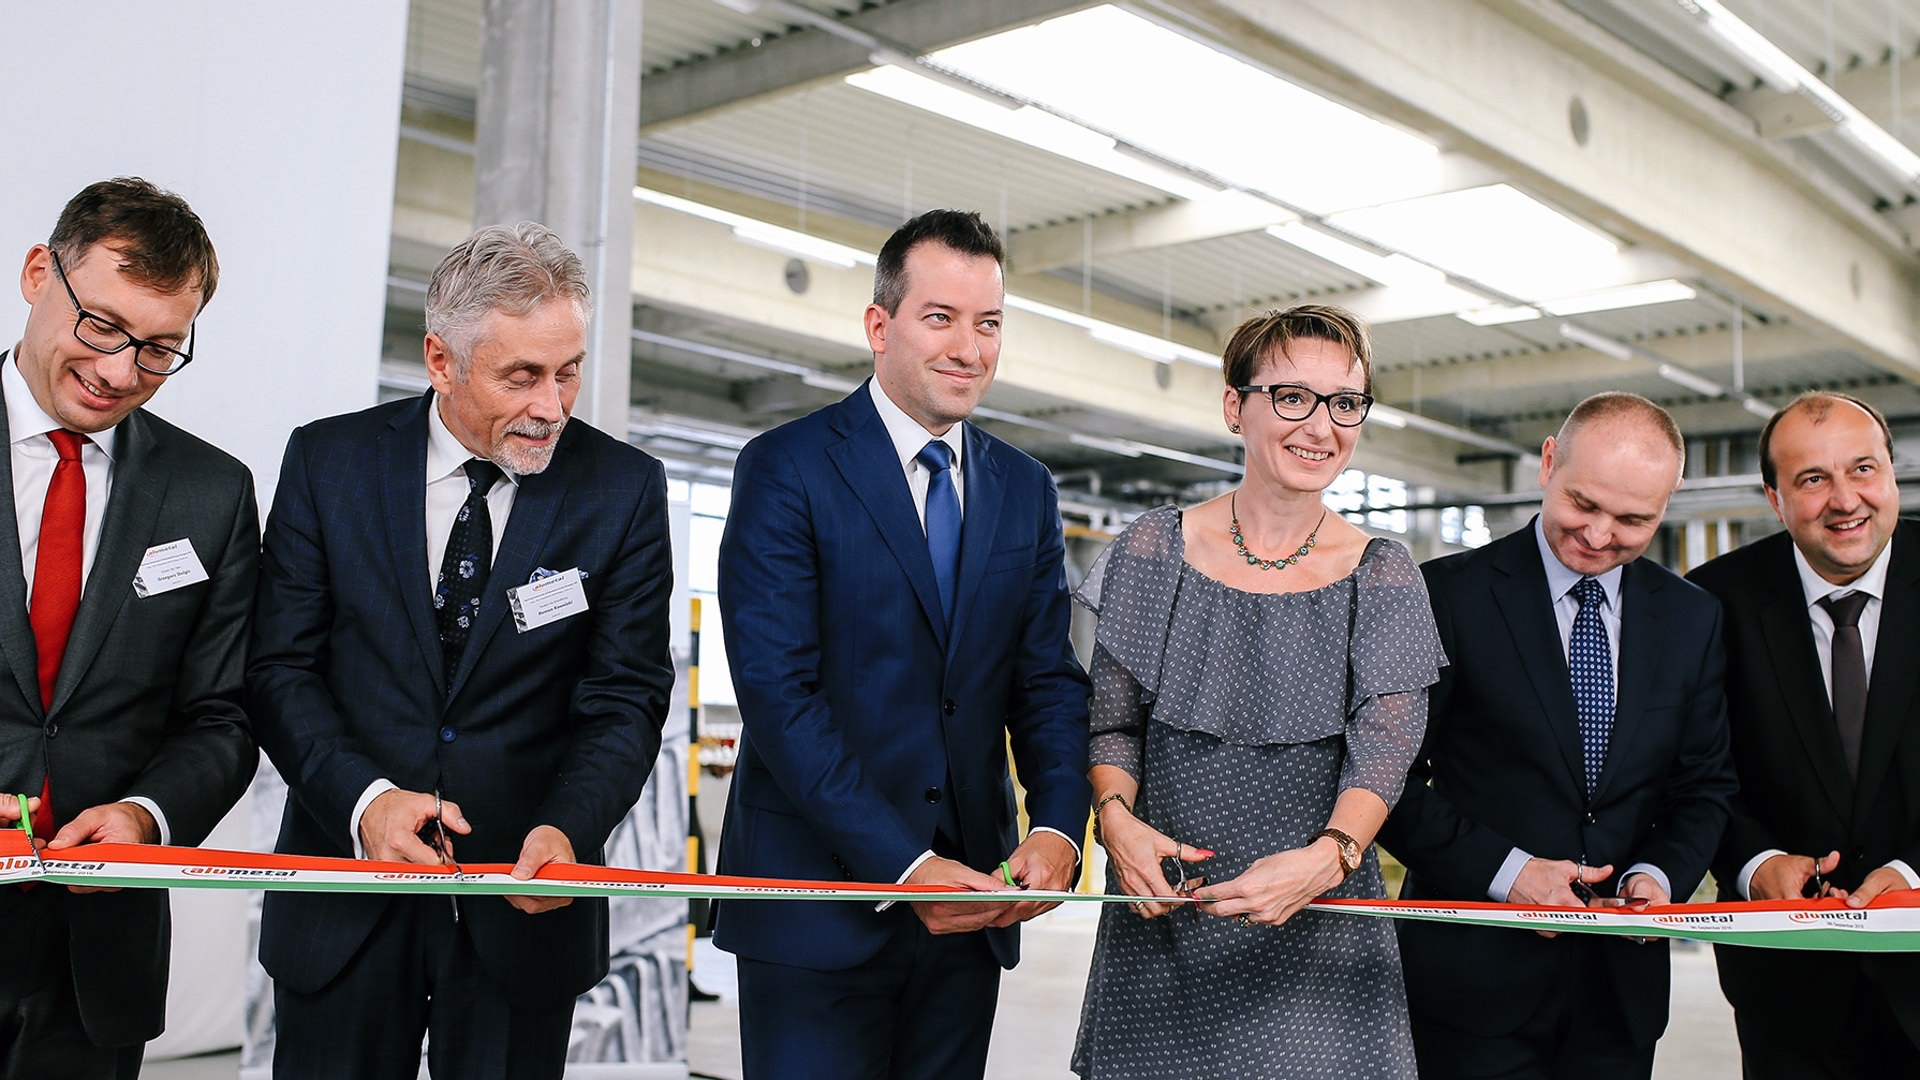 Alumetal opens a production plant in Hungary